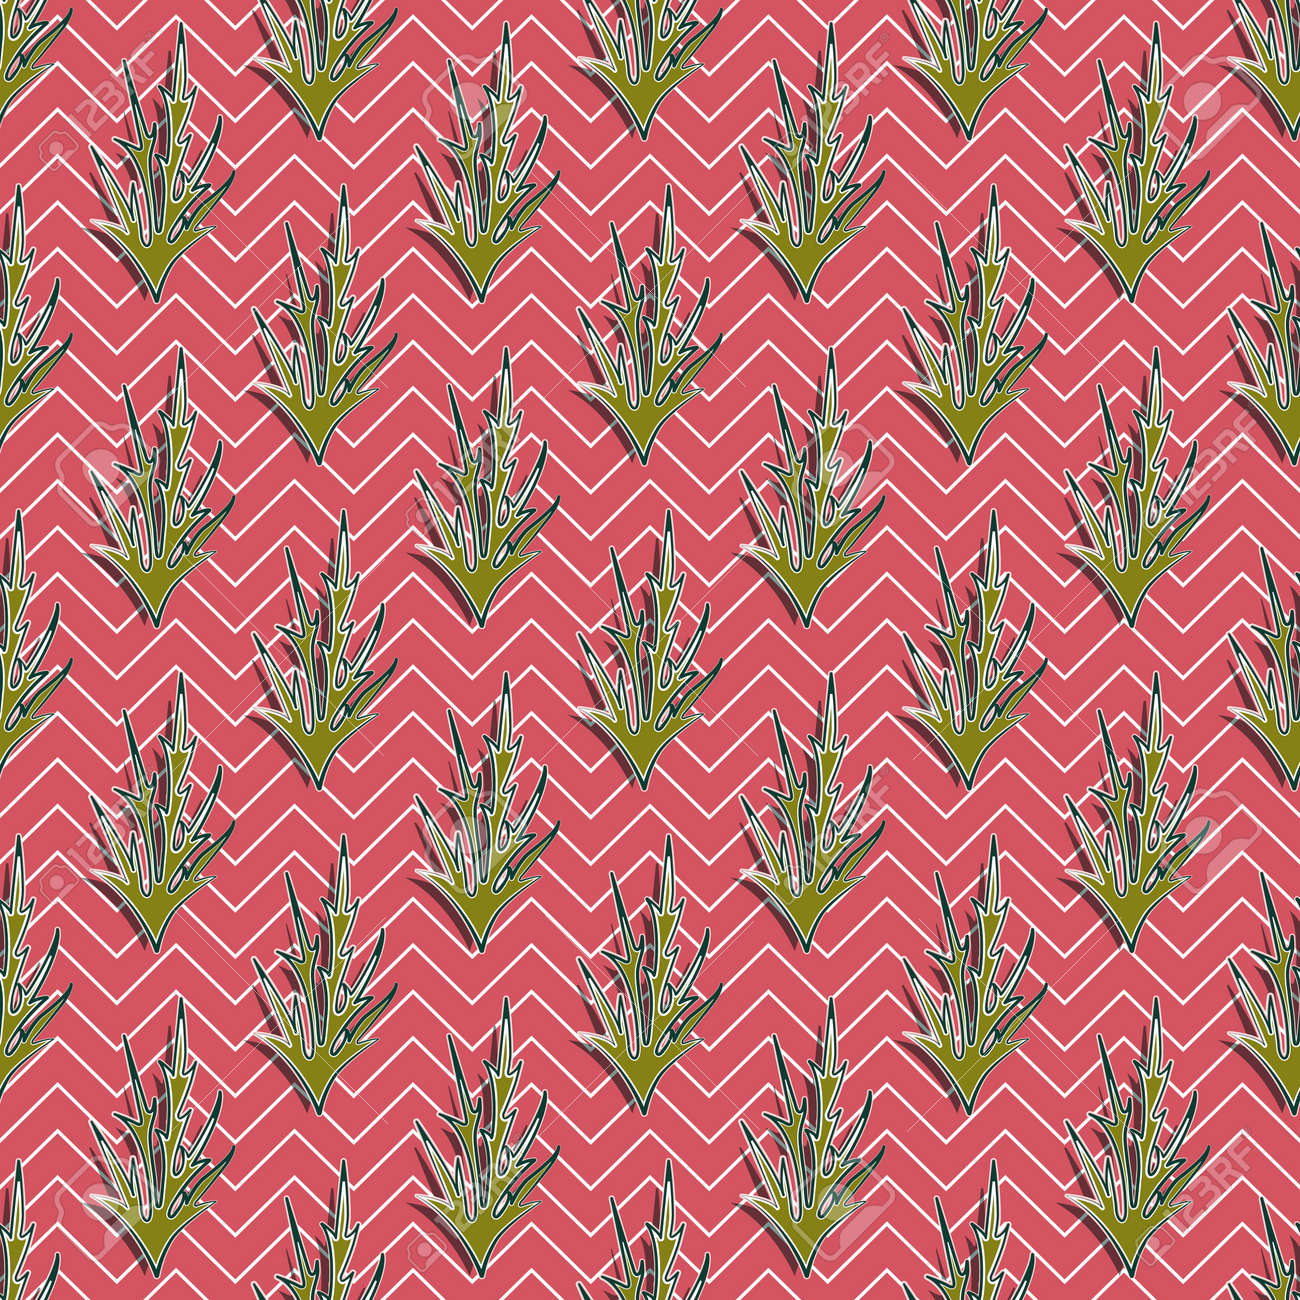 Olive thorns seamless pattern with dark and light strokes, terracotta background with white zigzags. Great for decorating fabrics, textiles, gift wrapping, printed matter, interiors, advertising. - 159819721